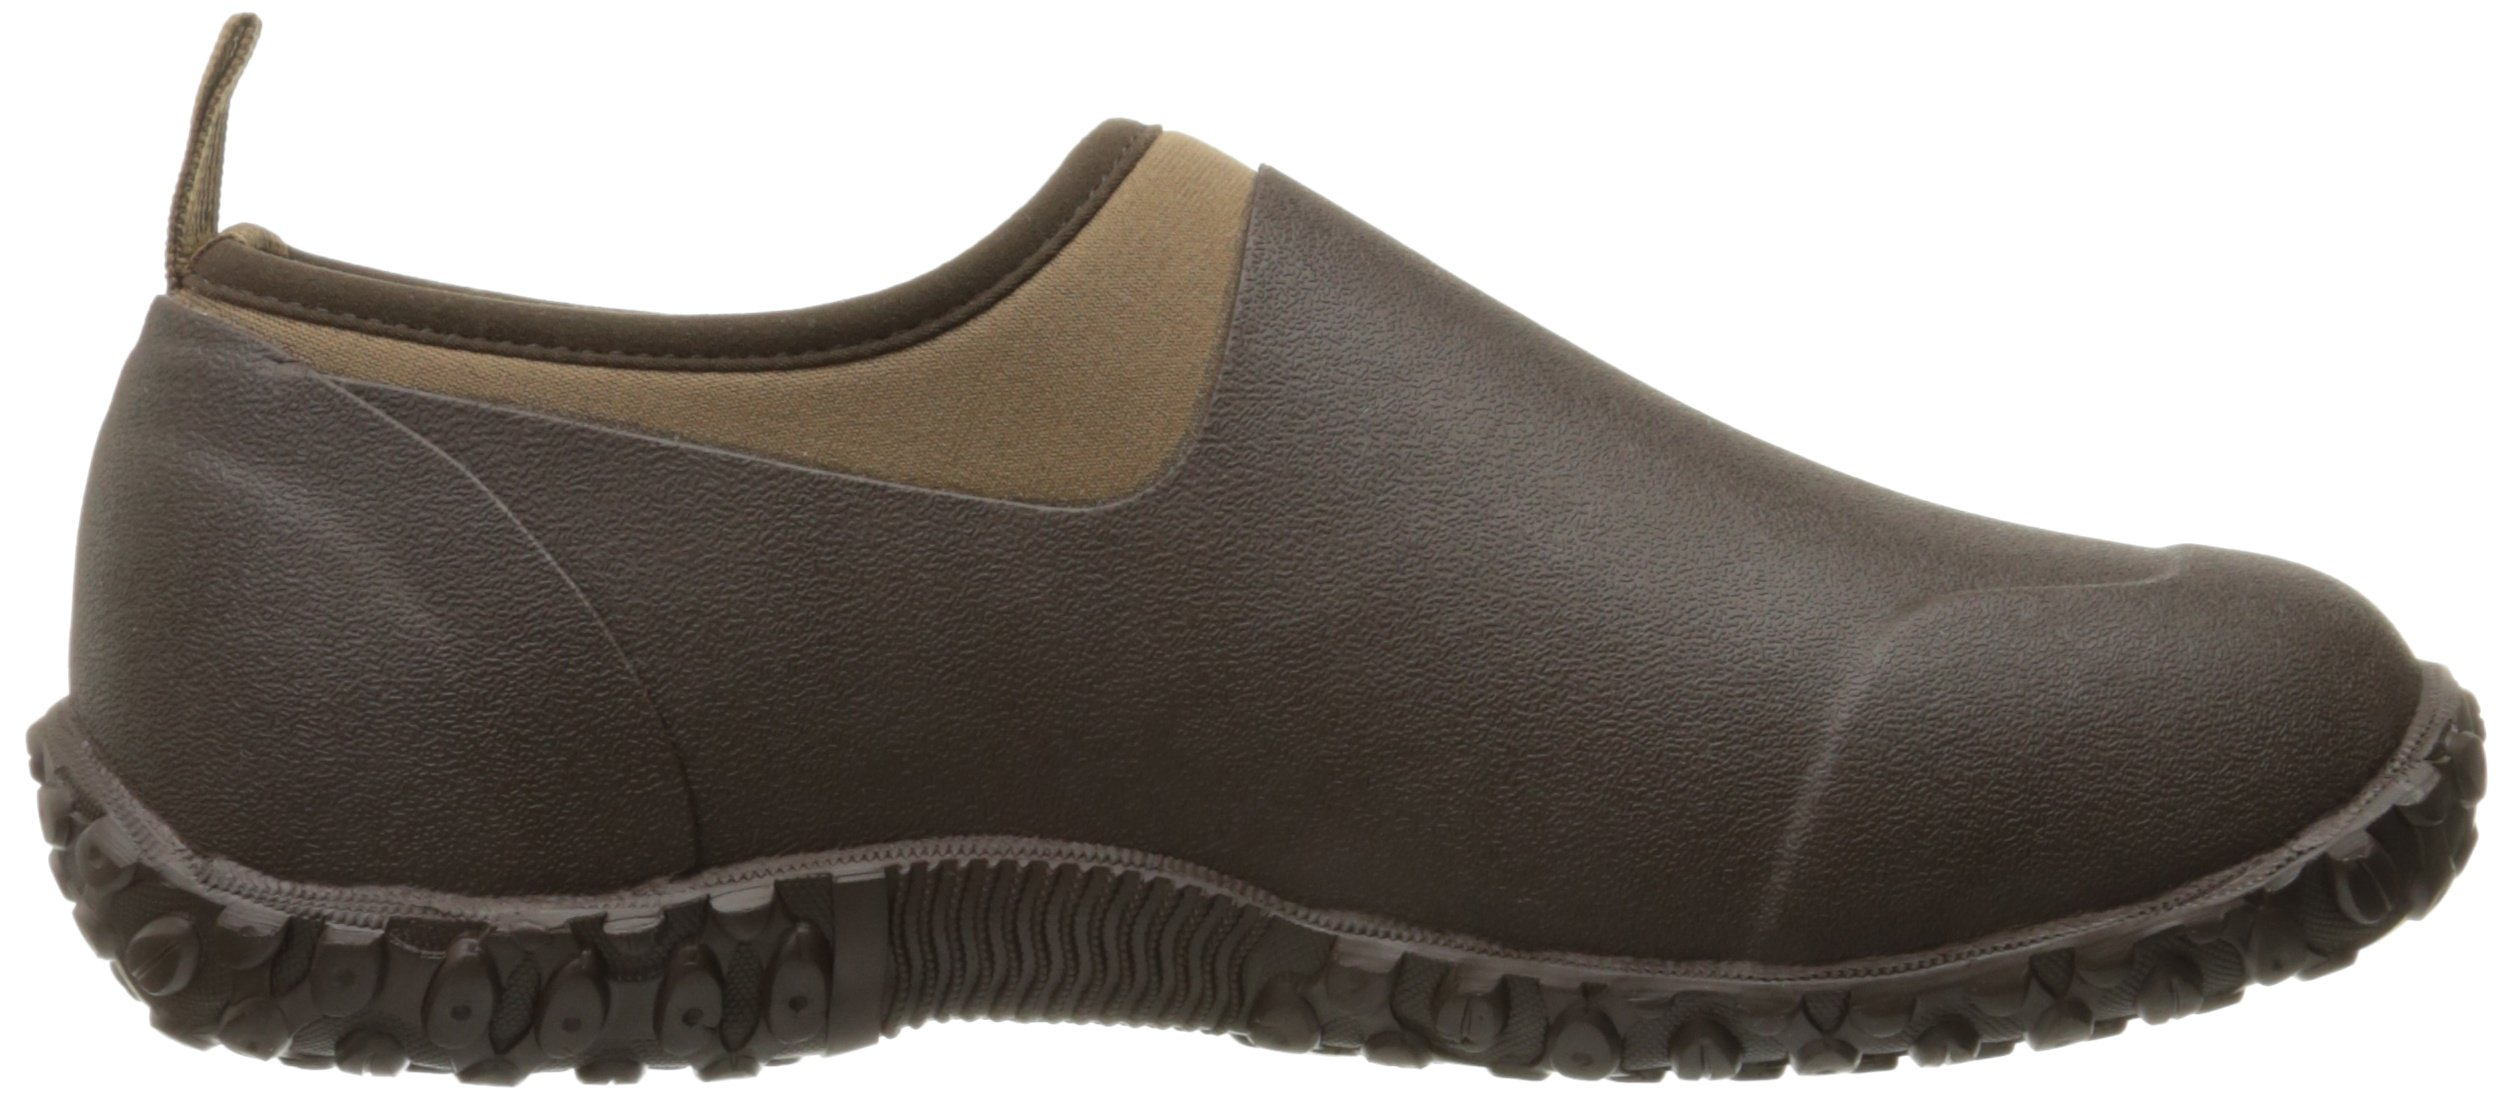 Muckster ll Men's Rubber Garden Shoes,Black/Otter,8 US/8-8.5 M US by Muck Boot (Image #8)